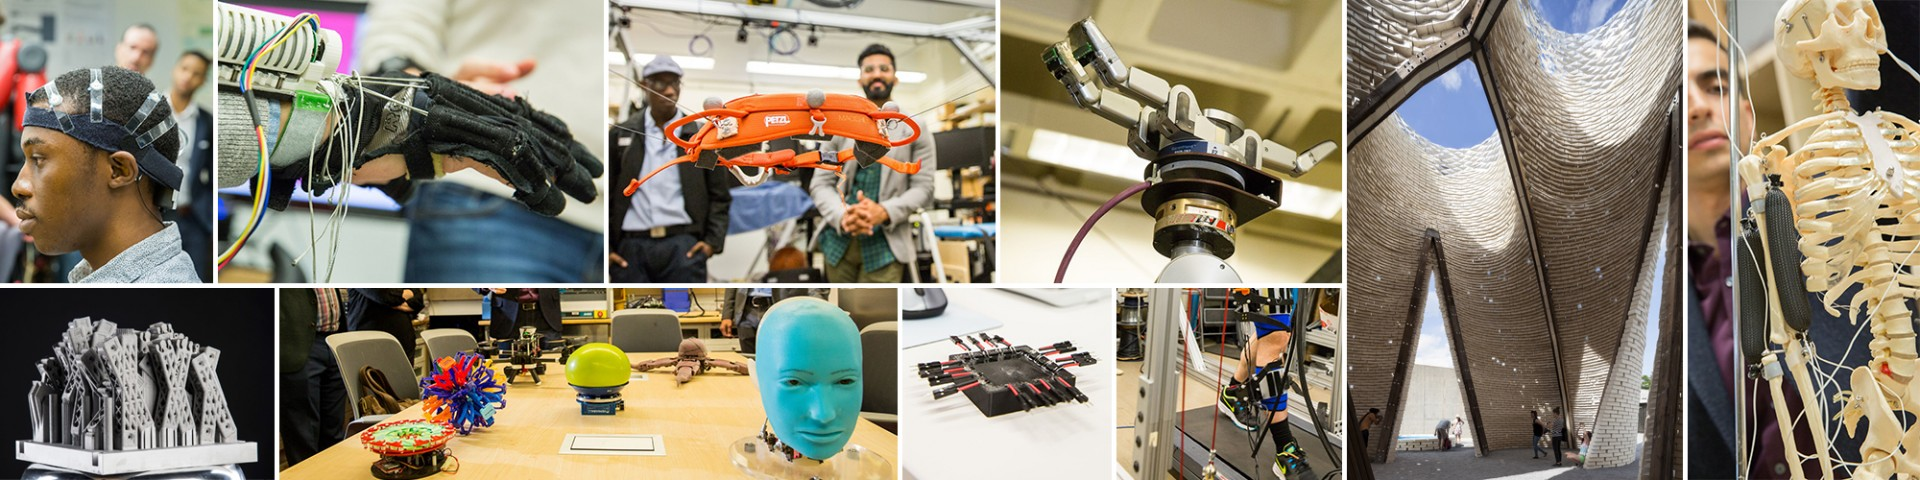 collage of robotics research